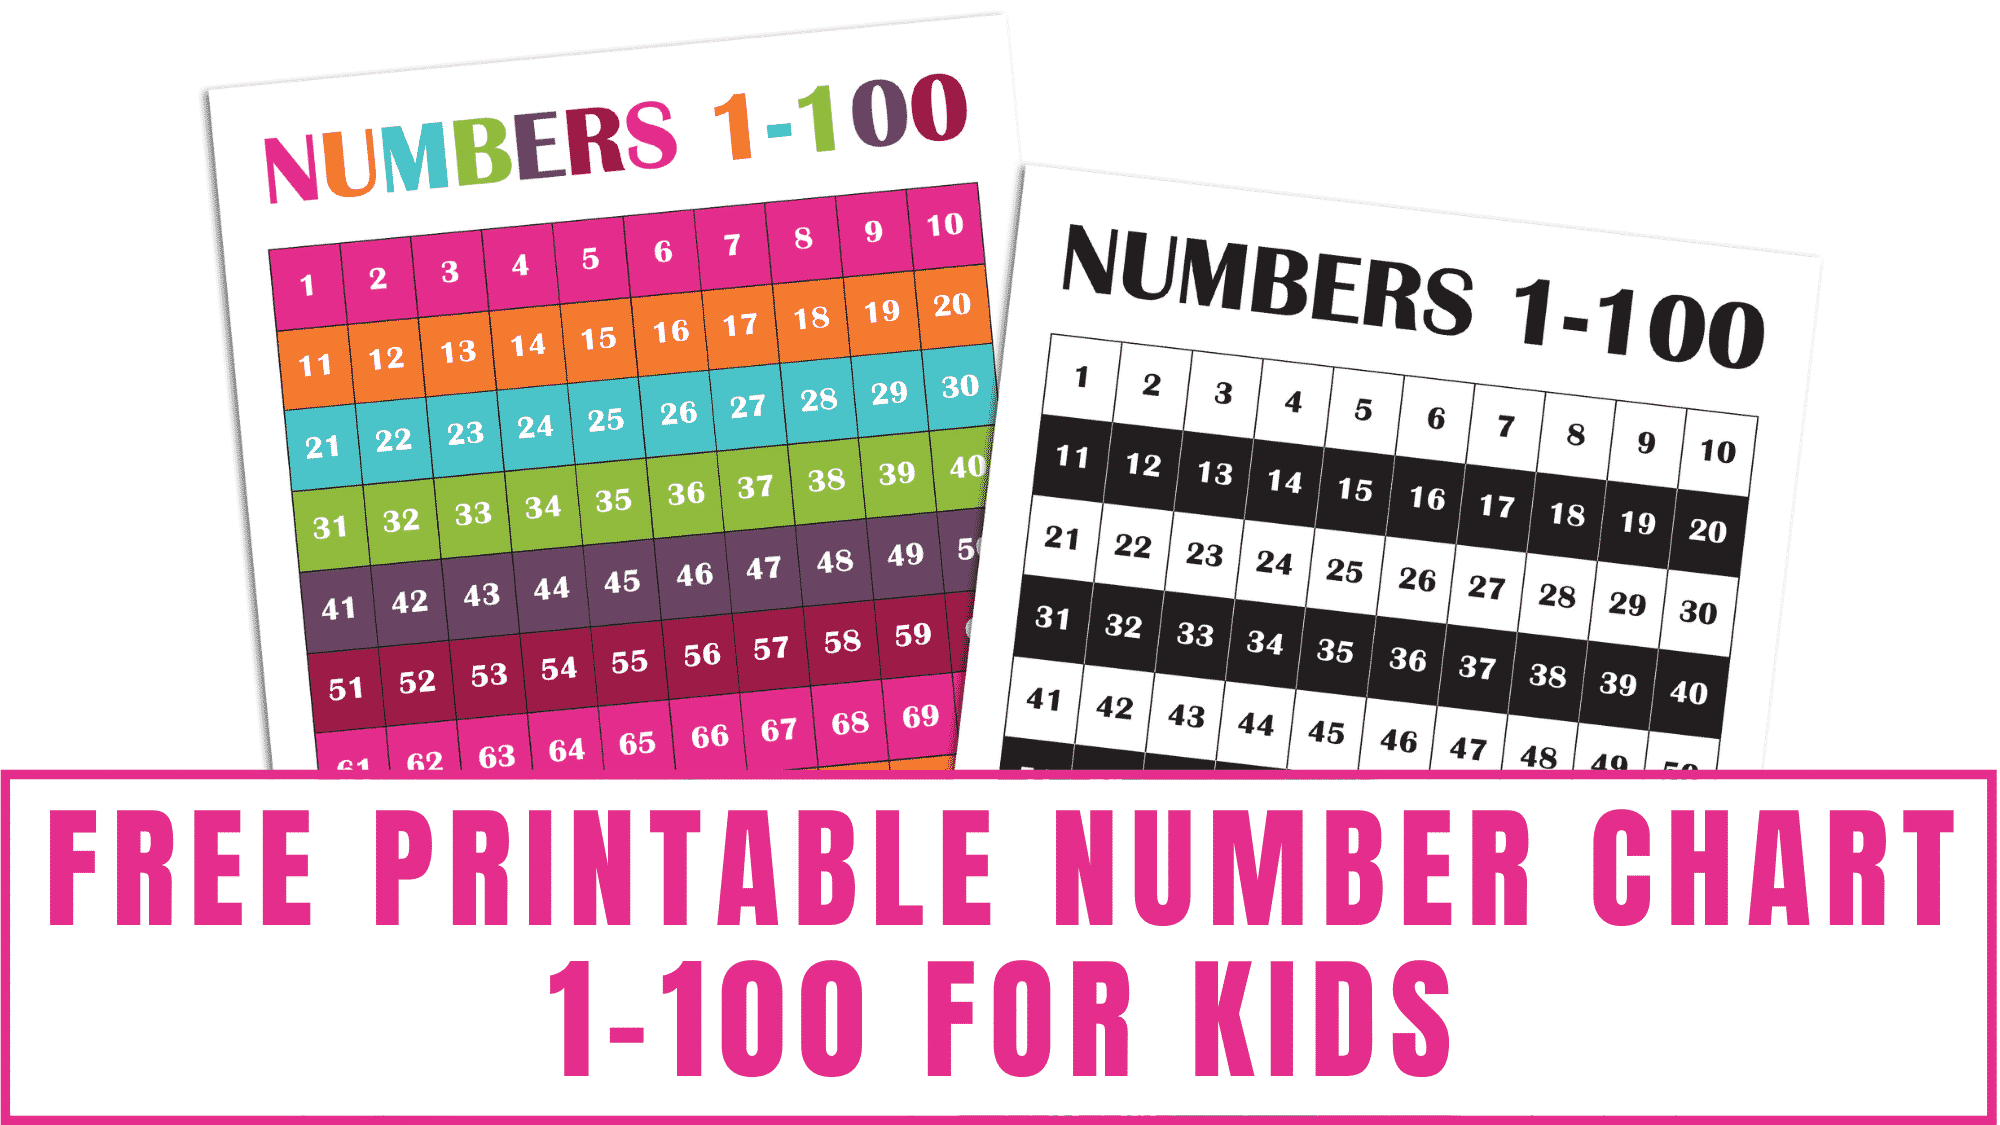 Help your kid learn how to count and work on number recognition by using this free printable number chart 1-100 for kids. Choose from a colored number chart to 100 or a black and white version.